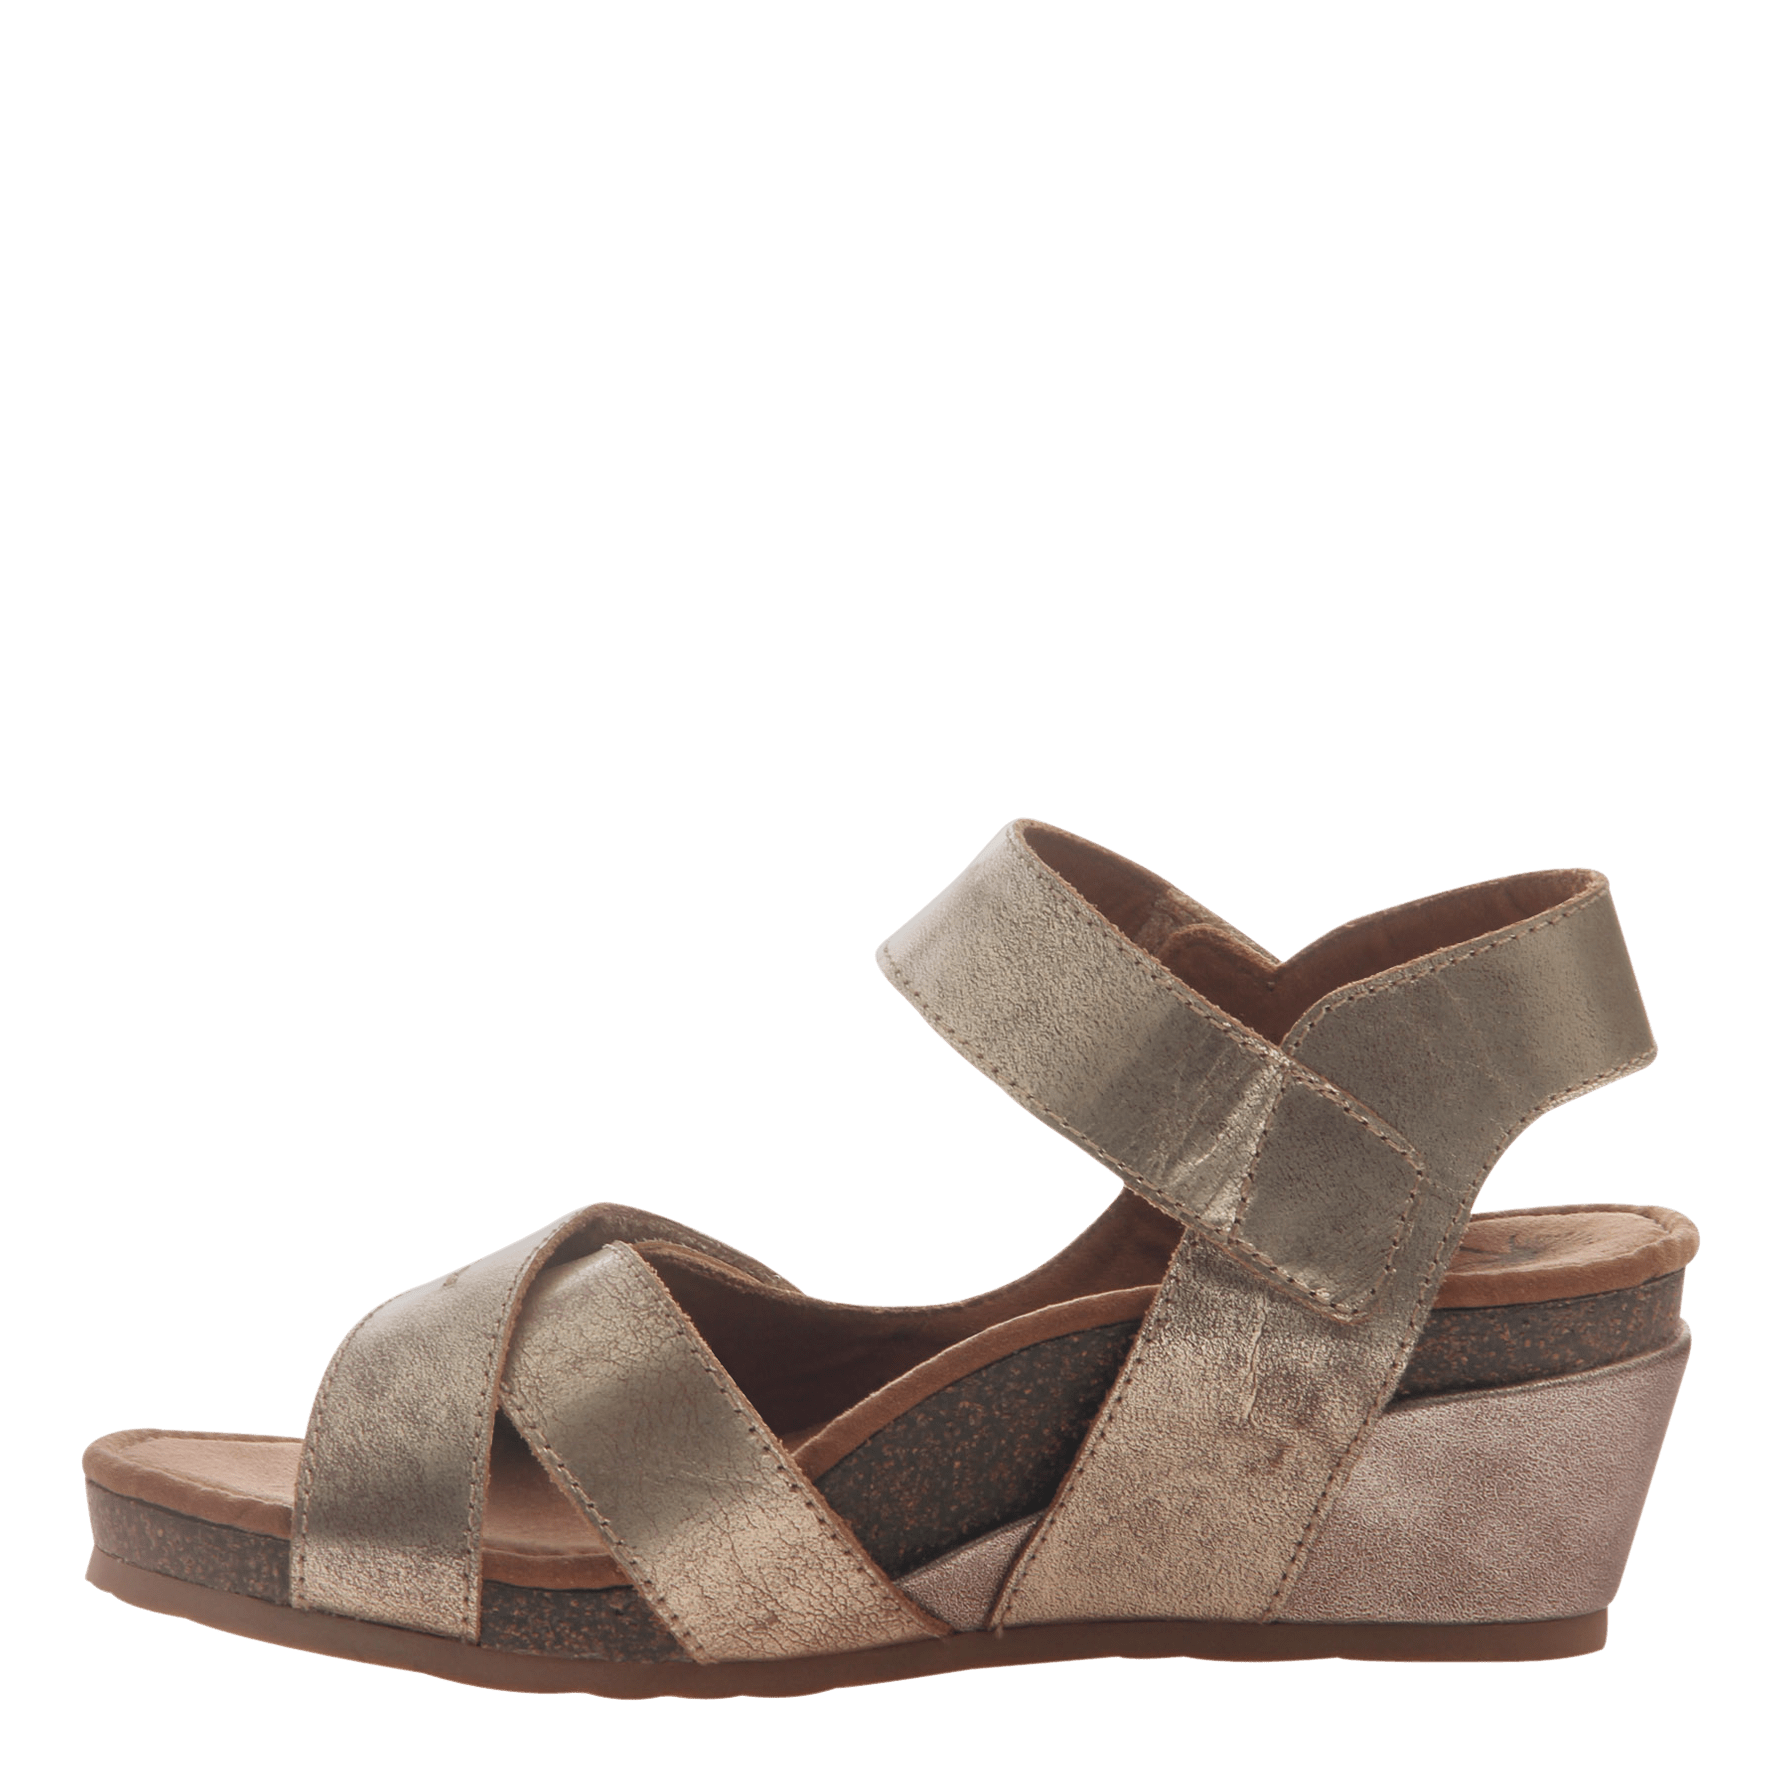 28b036f83596 Womens wedge sandal Sandey in Gold inside view